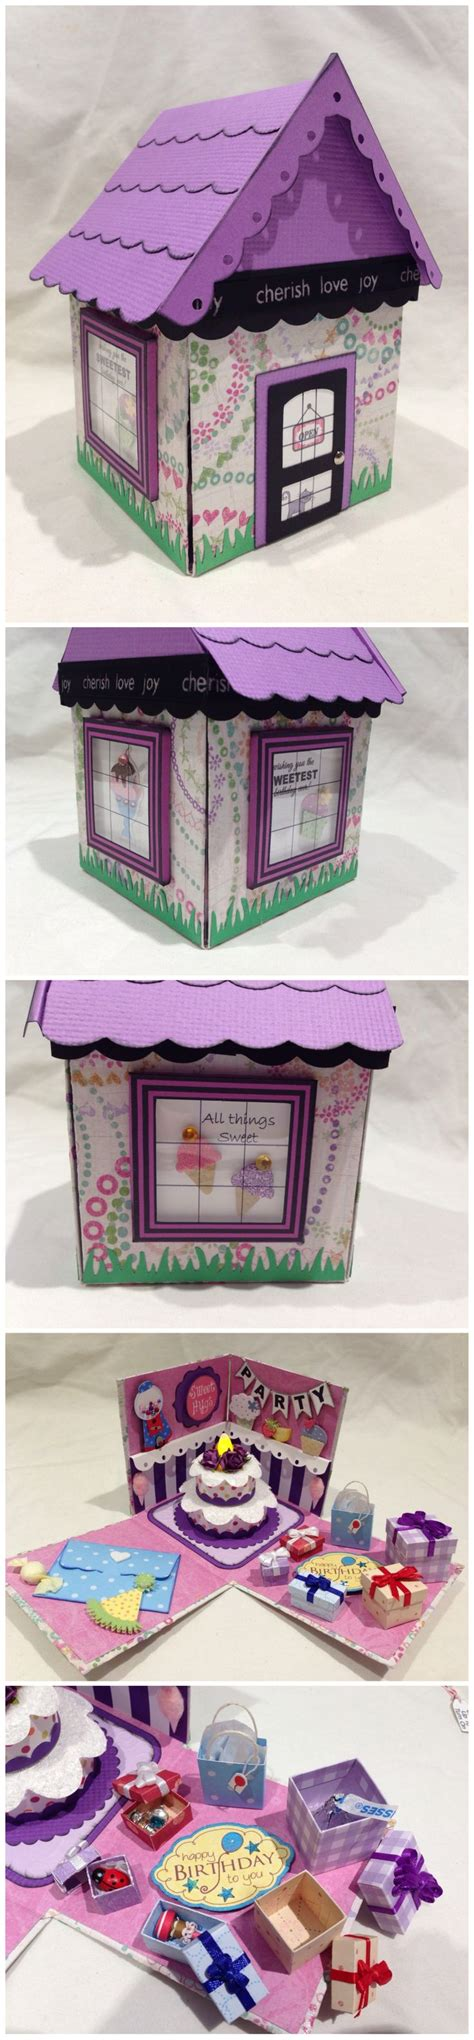 explosion box birthday cake tutorial 28 best images about explosion box templates on pinterest